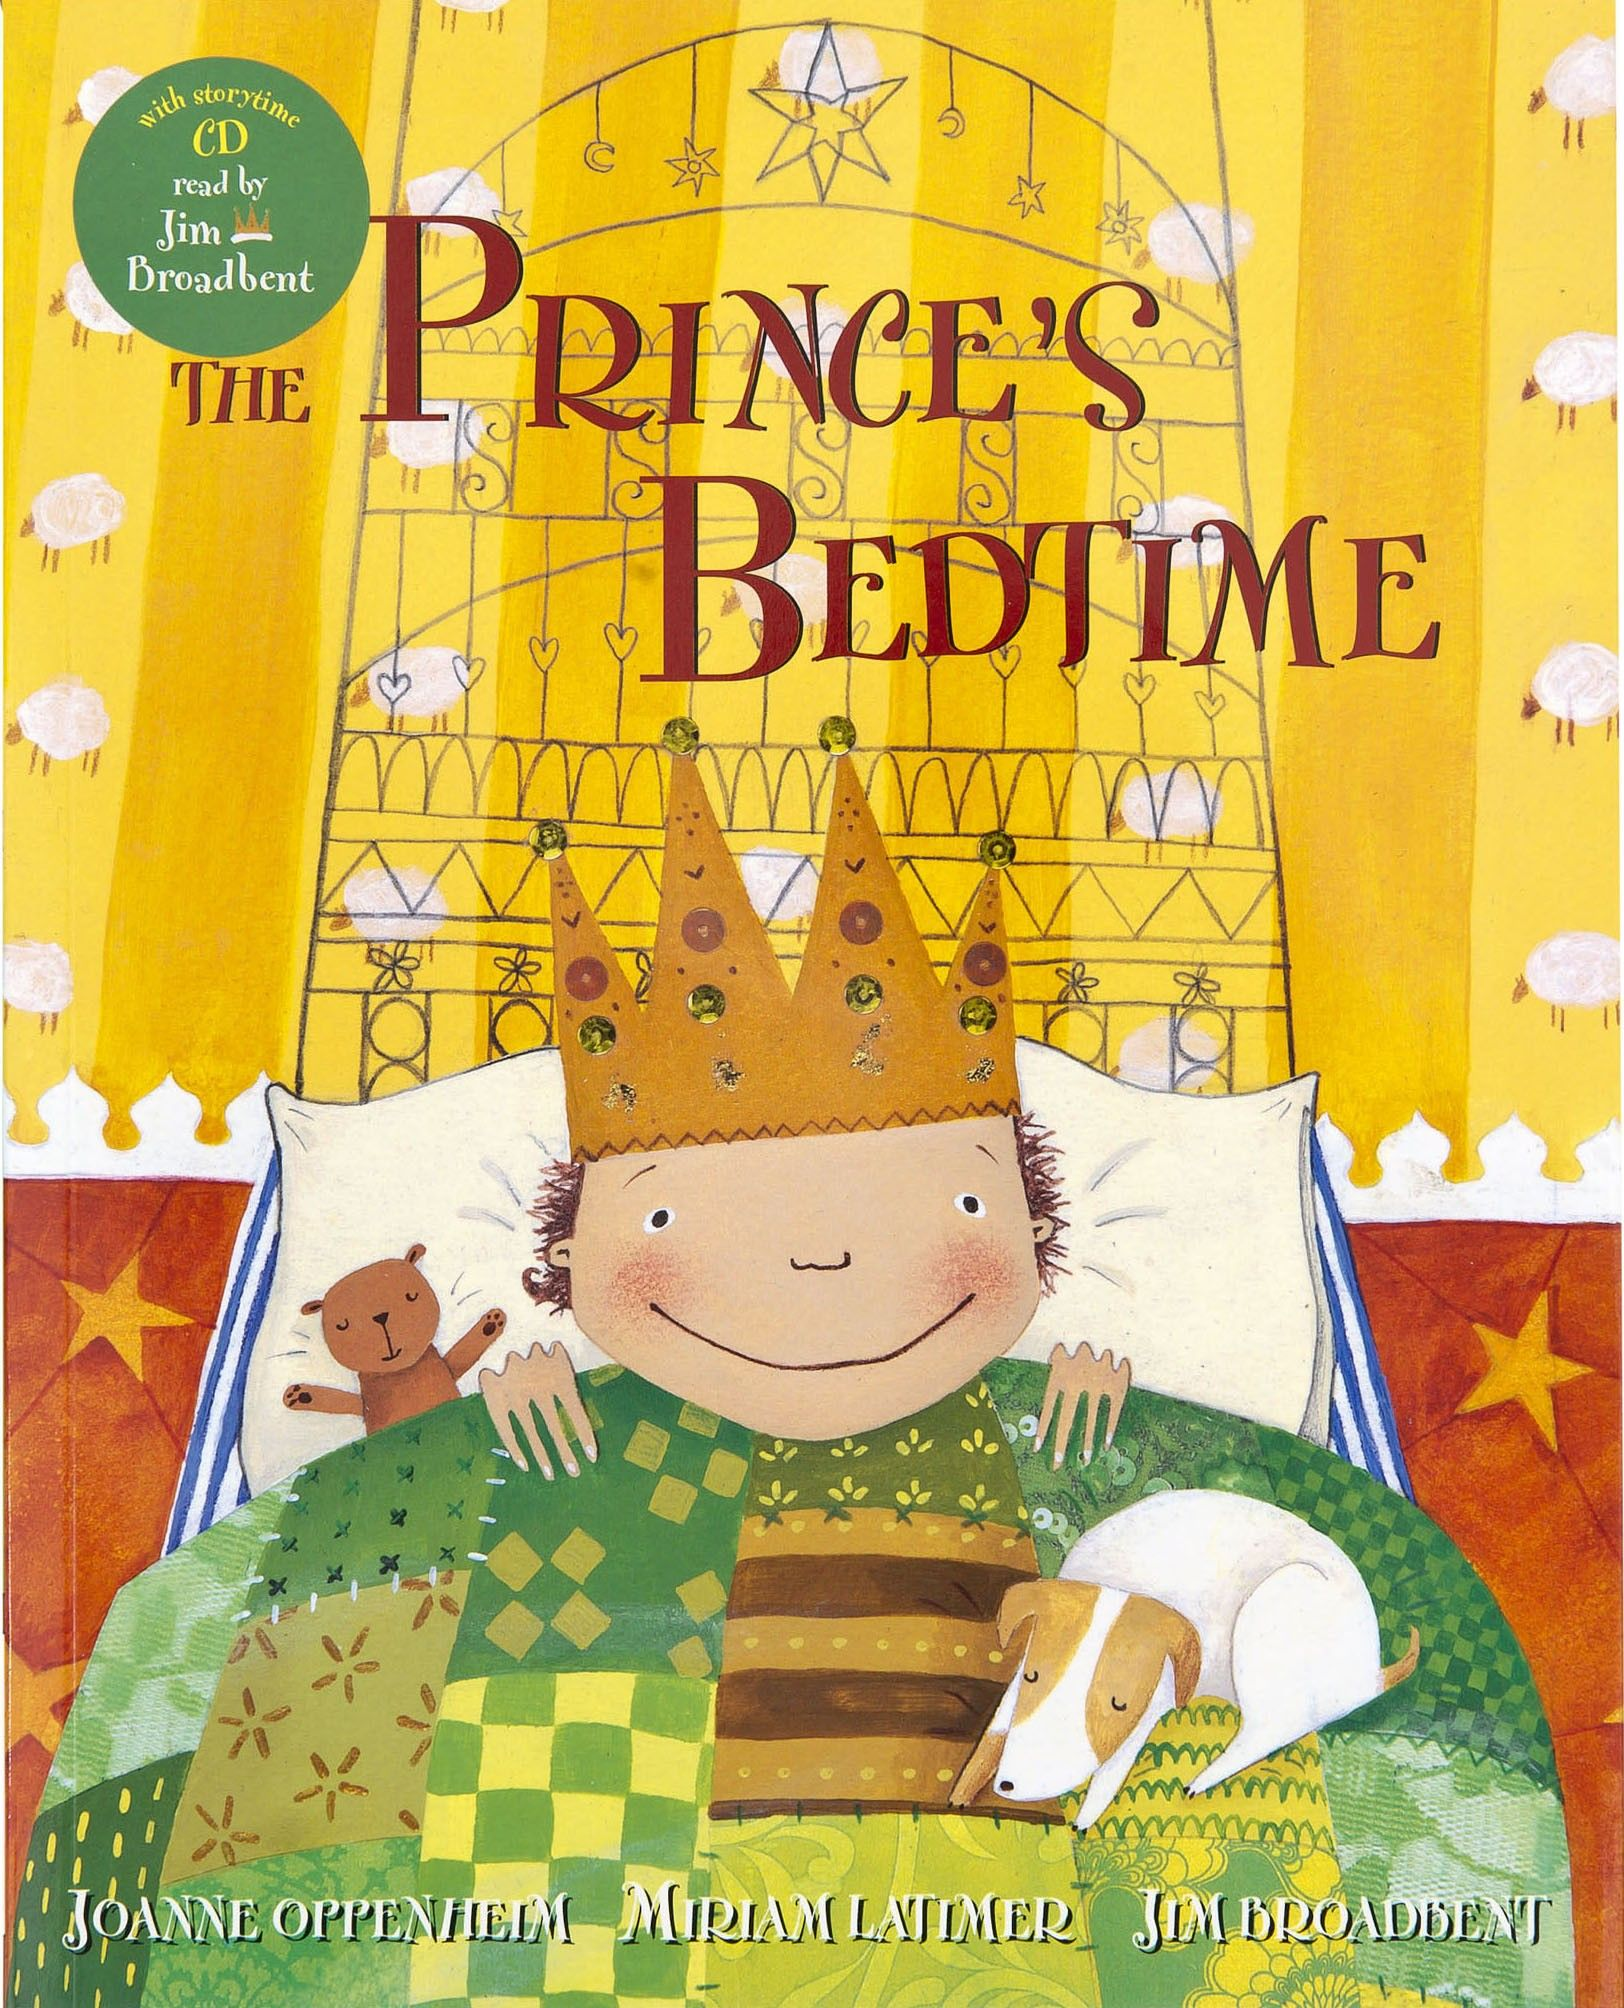 Children's Book: The Prince's Bedtime by Joanne Oppenheim. Royal Collection Trust Shop